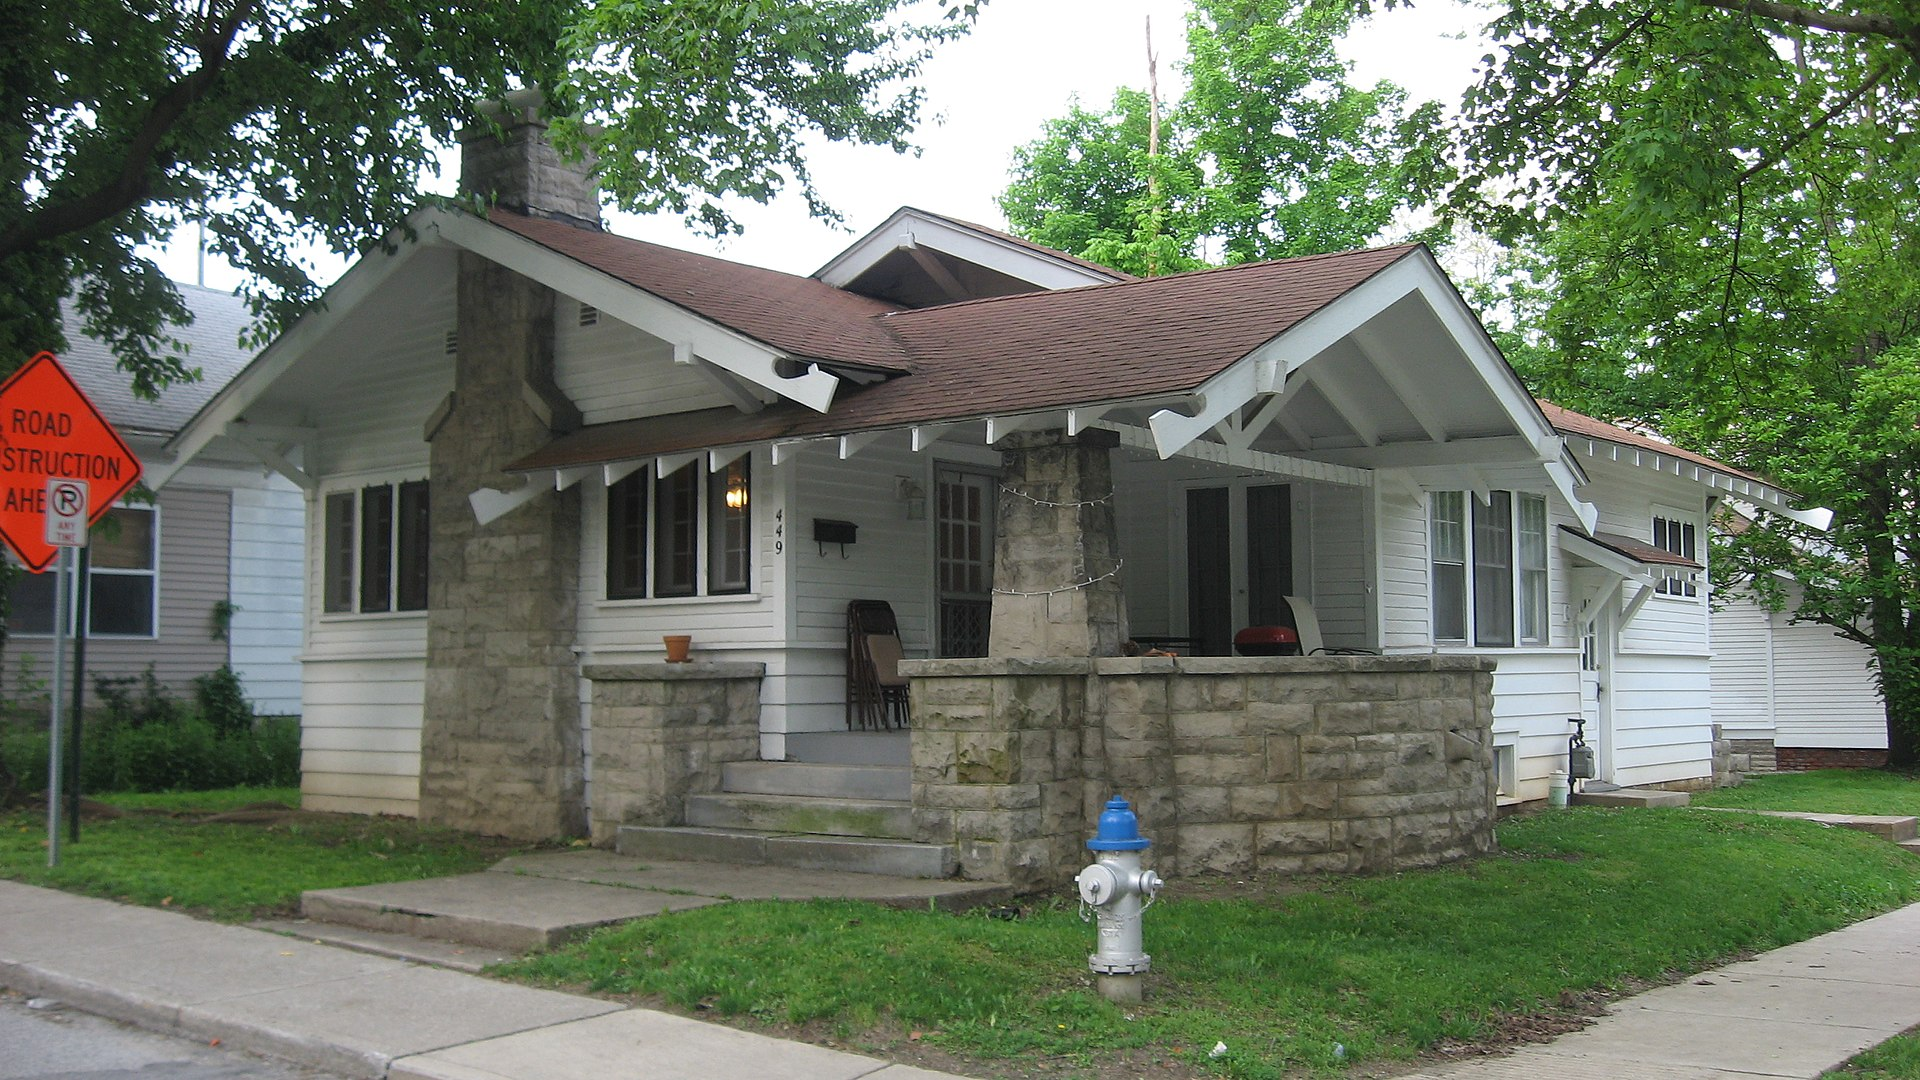 Airplane bungalow wikipedia for Airplane bungalow house plans